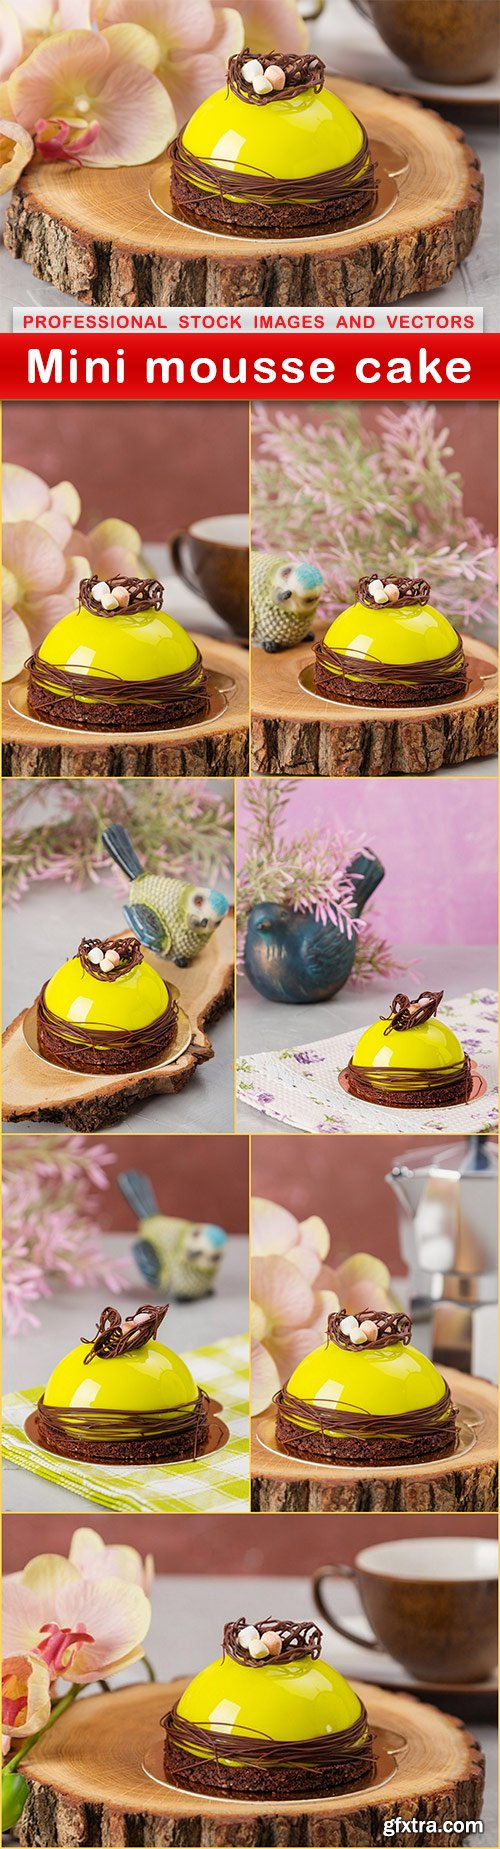 Mini mousse cake - 8 UHQ JPEG